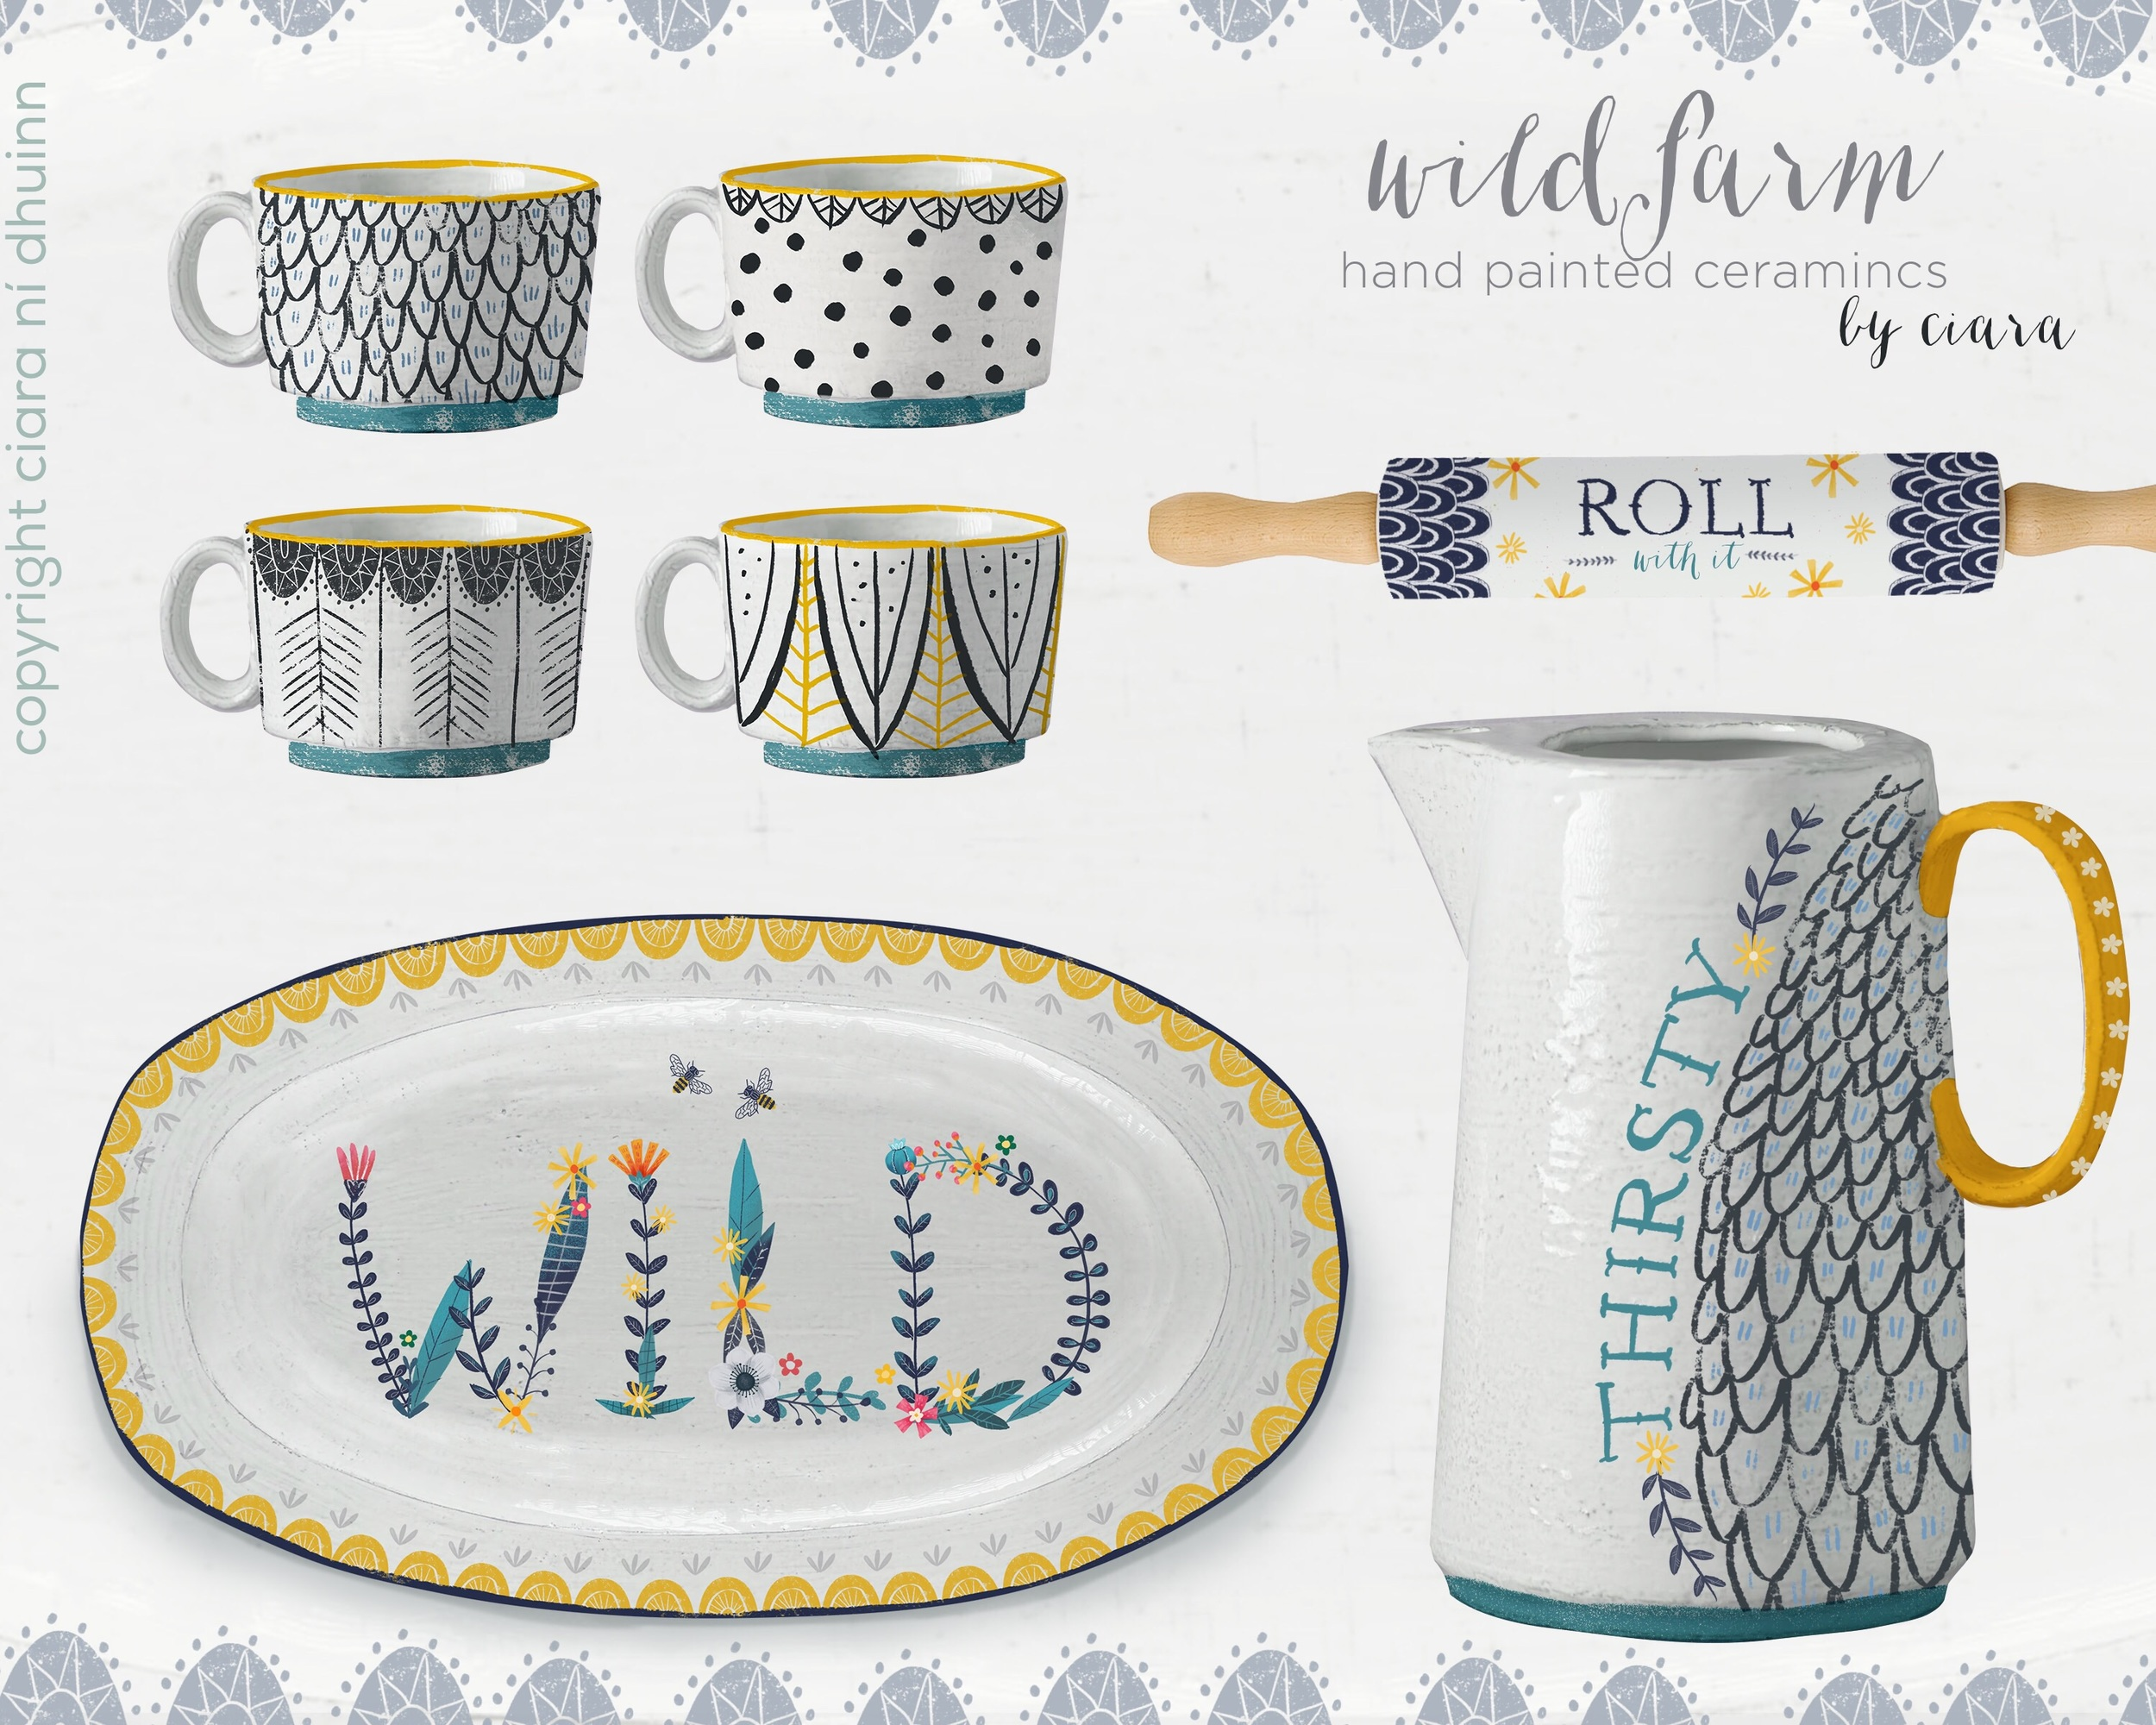 Wild Farm hand painted ceramic collection.